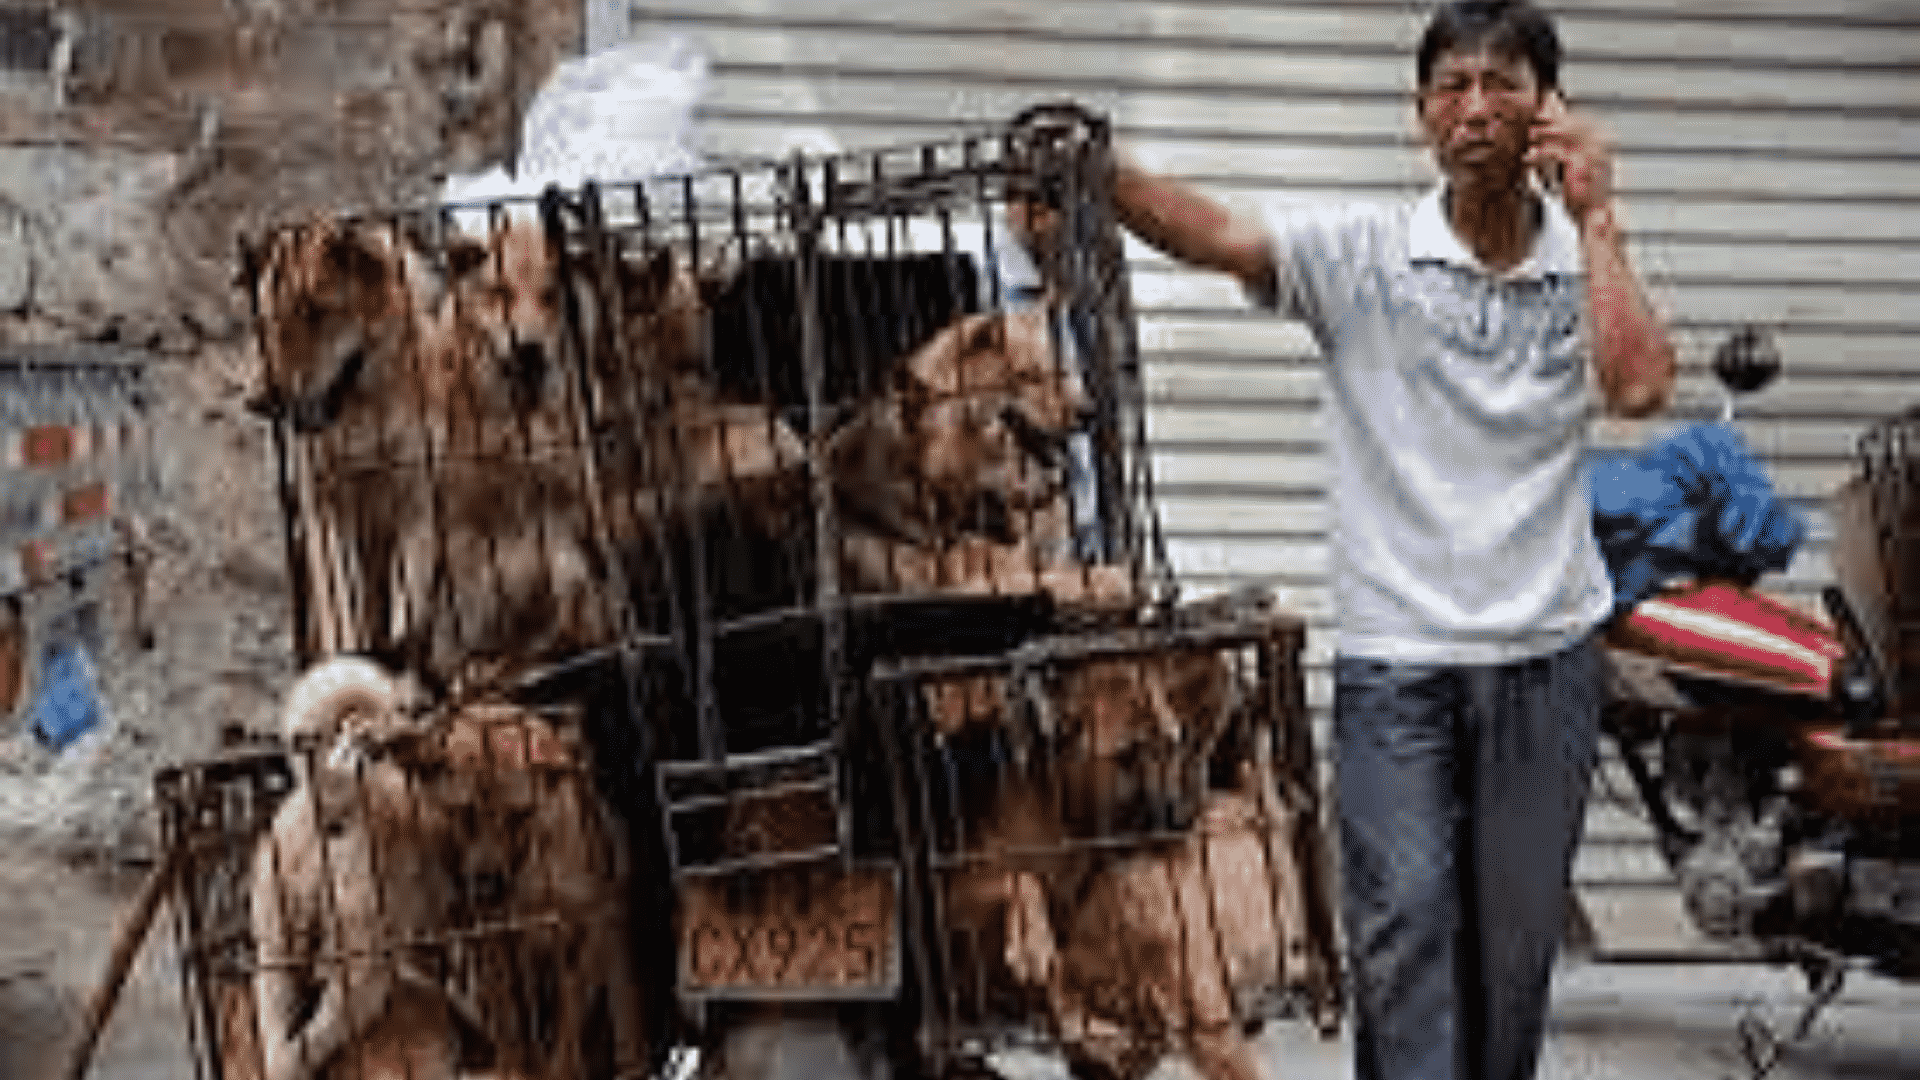 Help Us Shut Down Wet Markets, Where Dogs Are Skinned Alive and Pandemics Are Born!